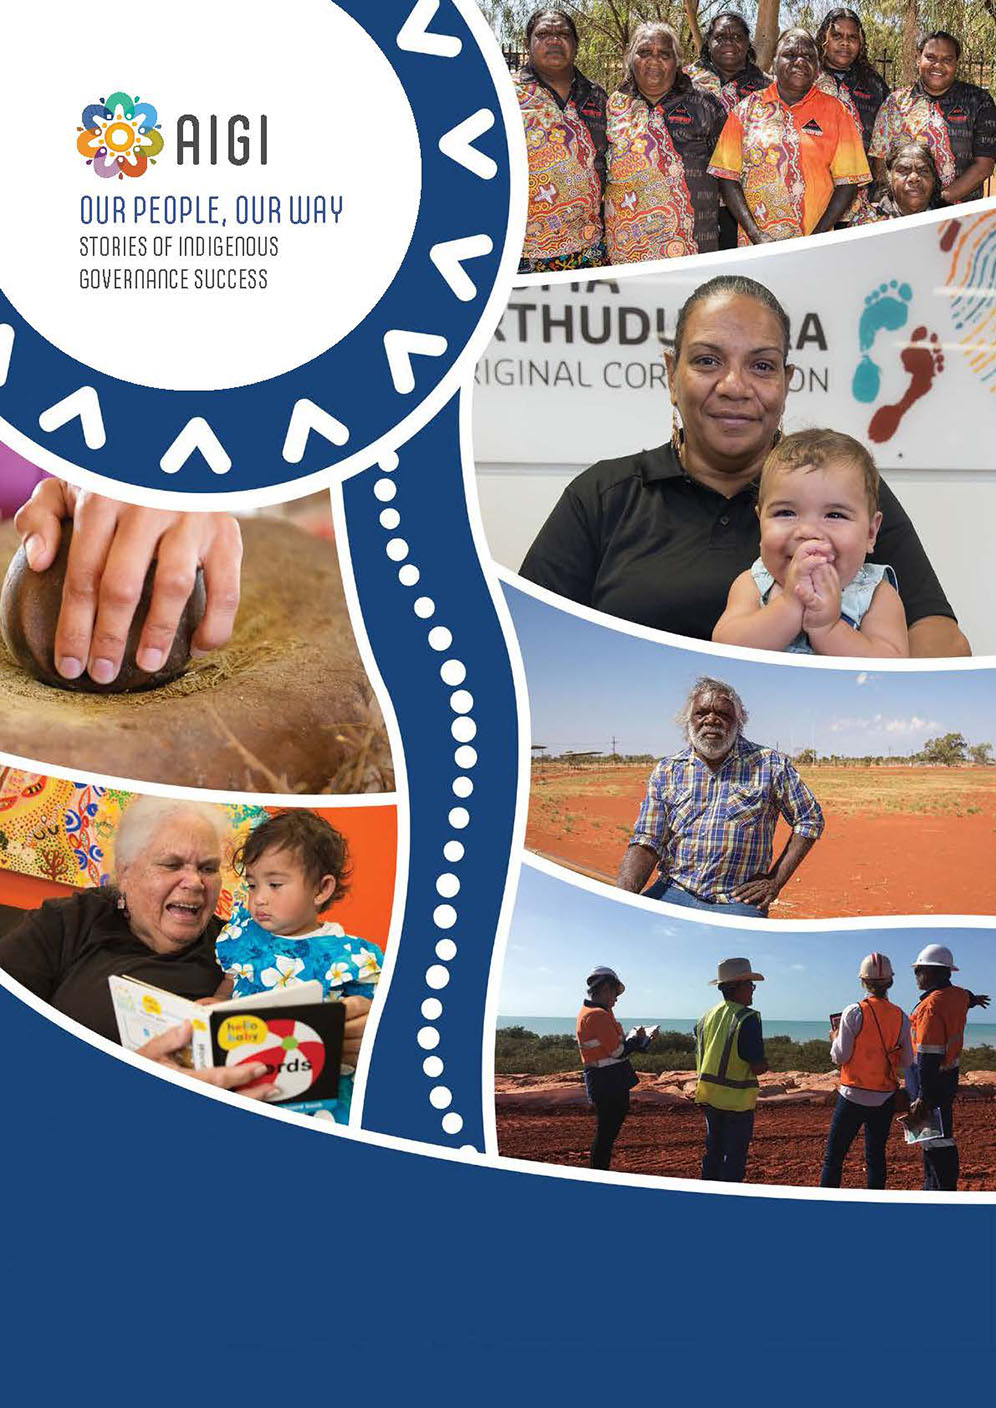 OUR PEOPLE, OUR WAY: STORIES OF INDIGENOUS GOVERNANCE SUCCESS